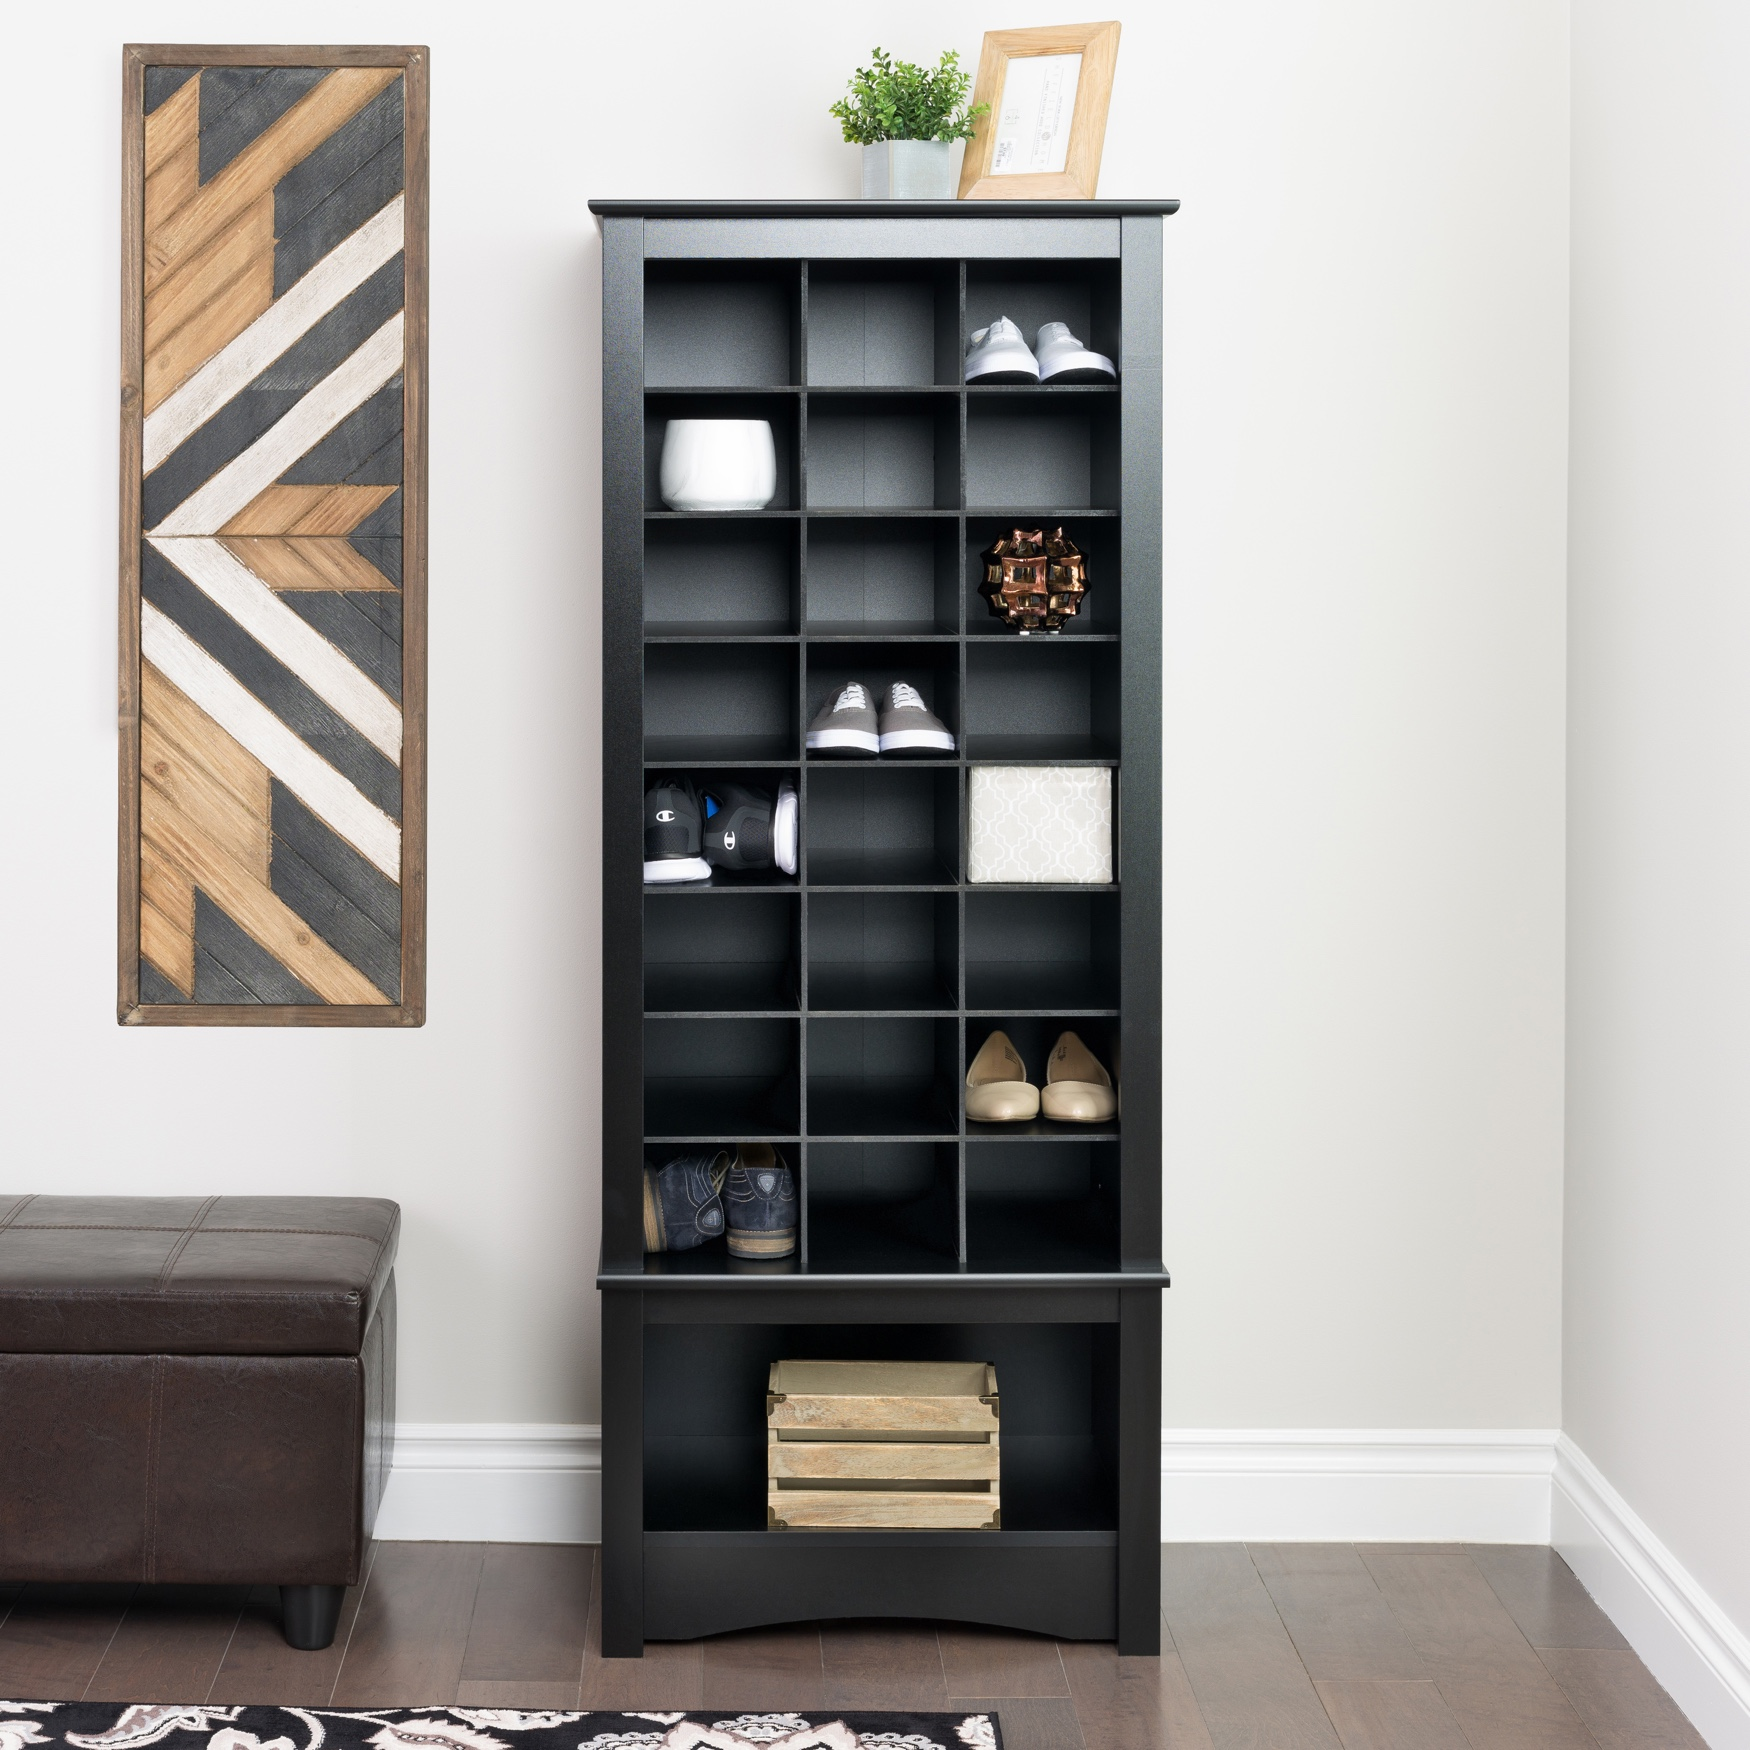 24-Pair Shoe Storage Rack with Bottom Shelf,